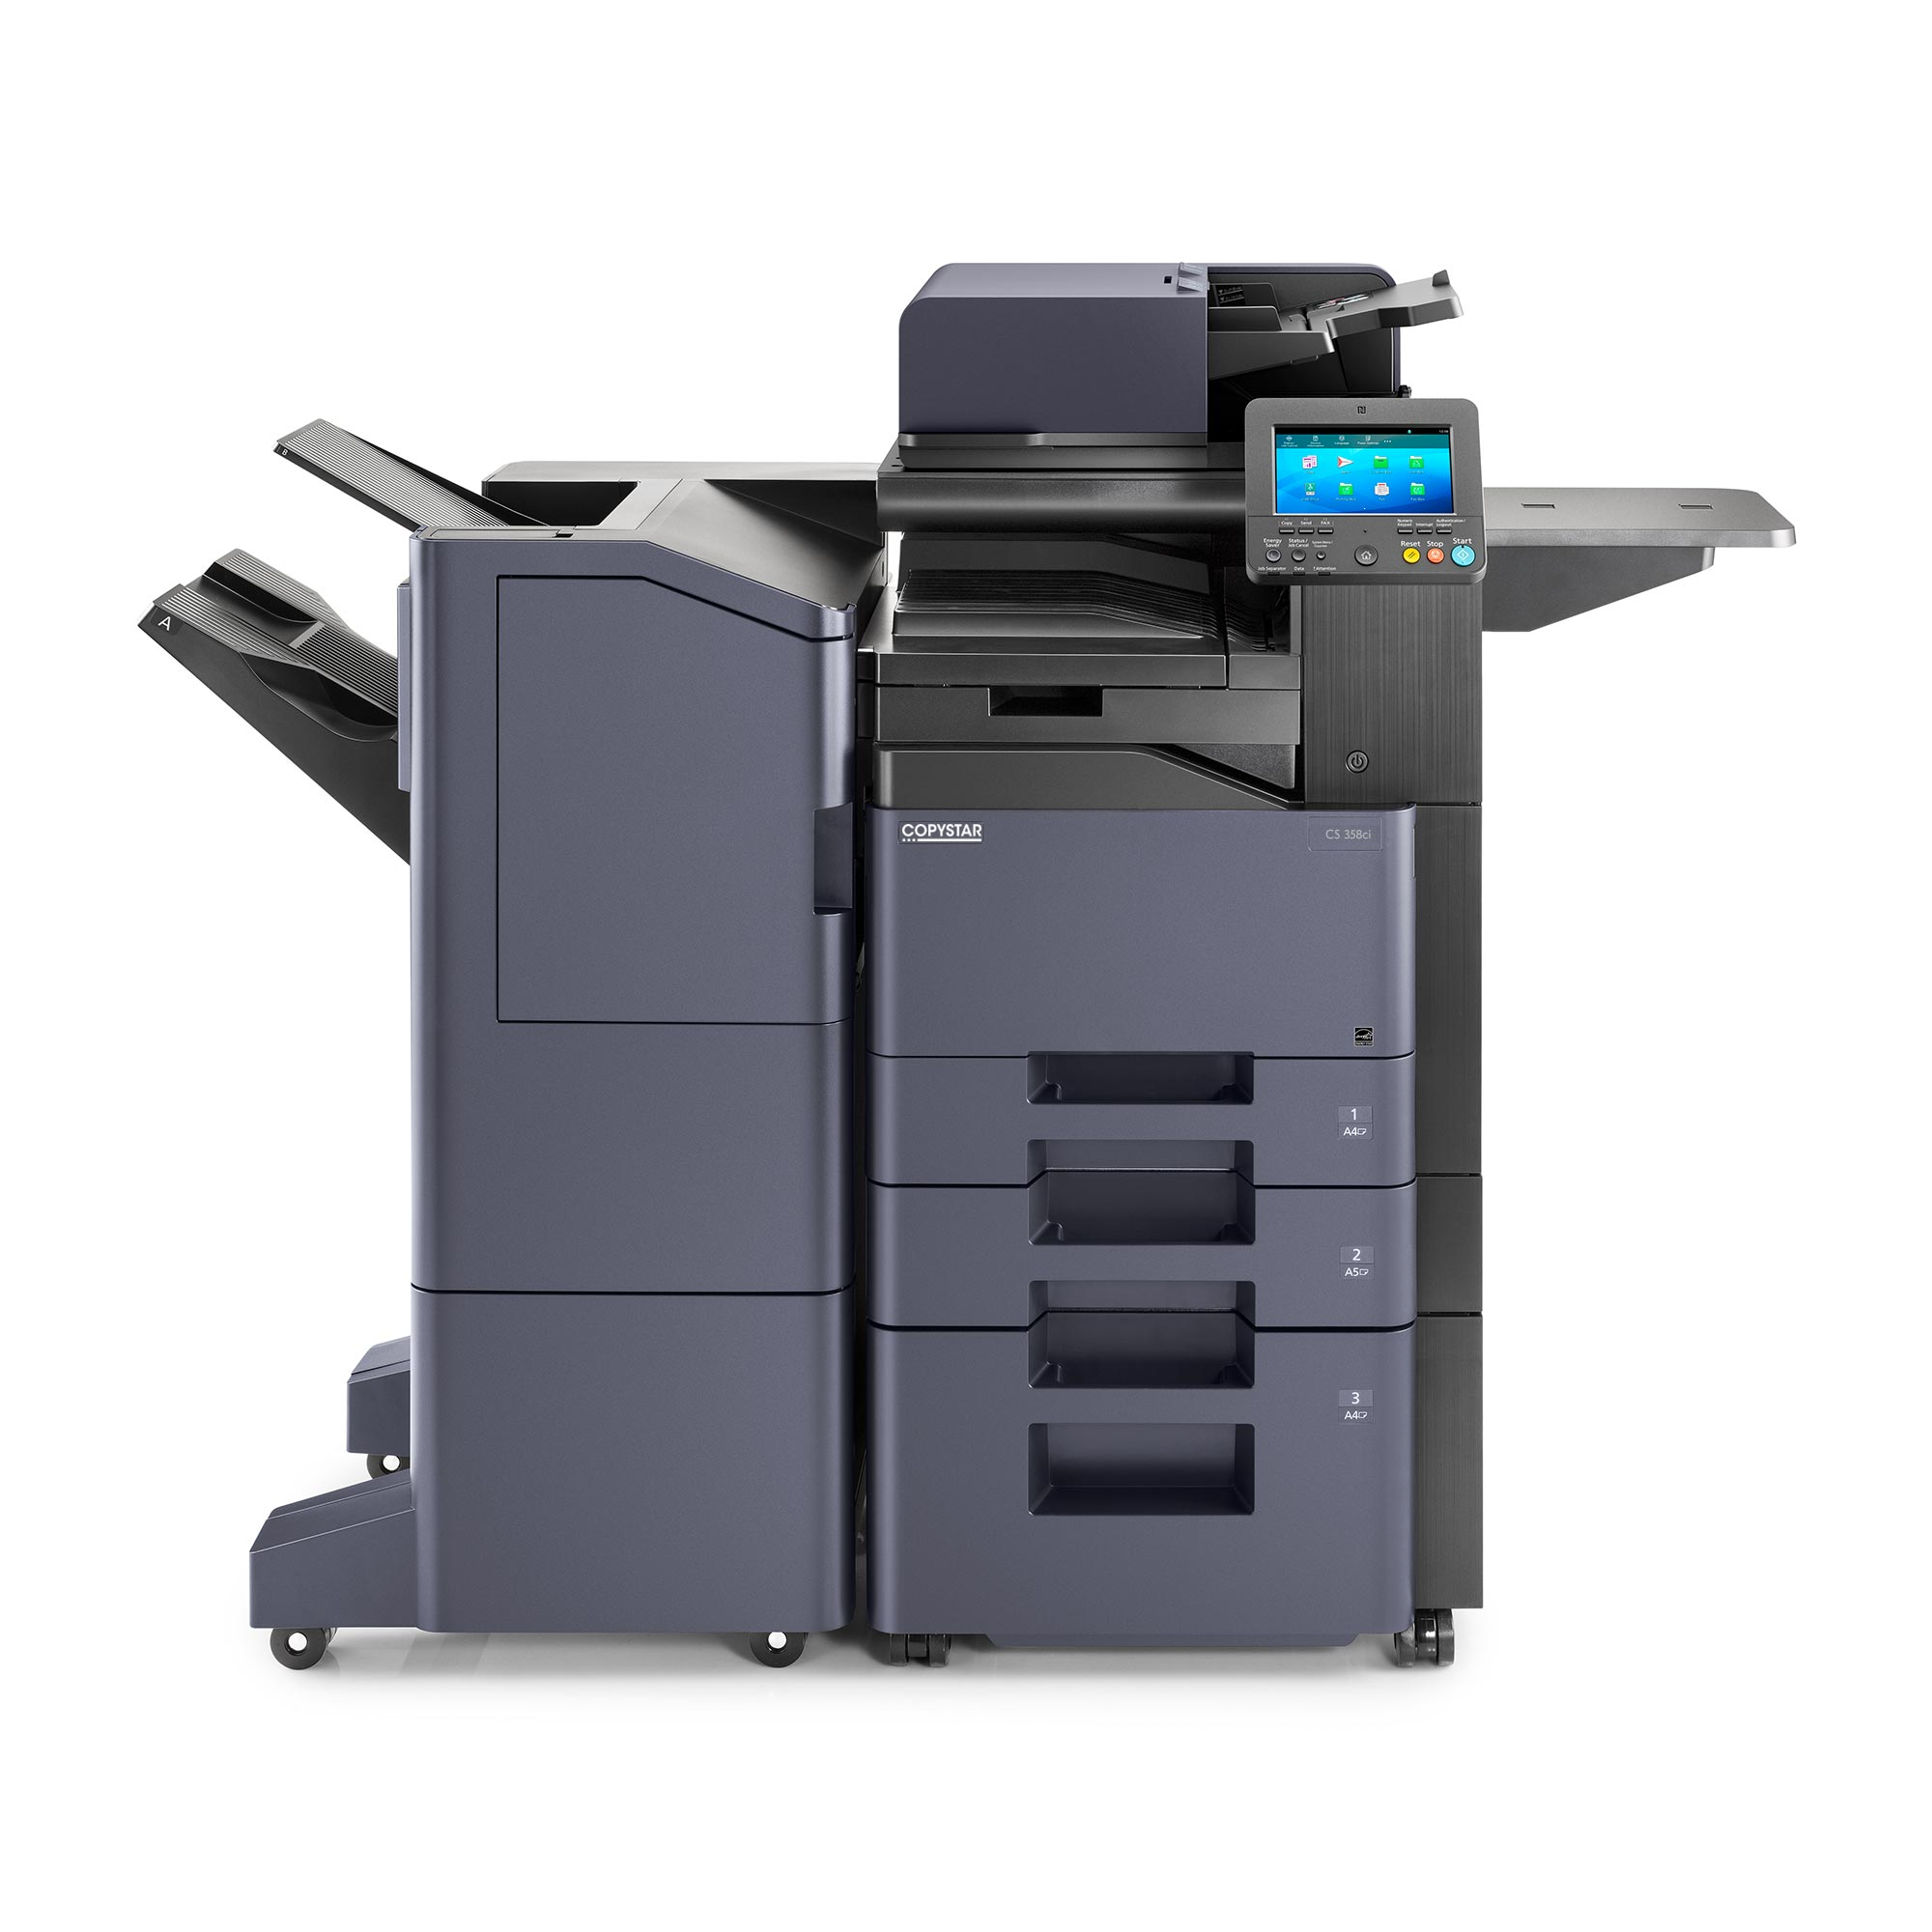 Kyocera CS_358ci Copier Lease Rates 55014, 55025, 55038, 55110, 55126